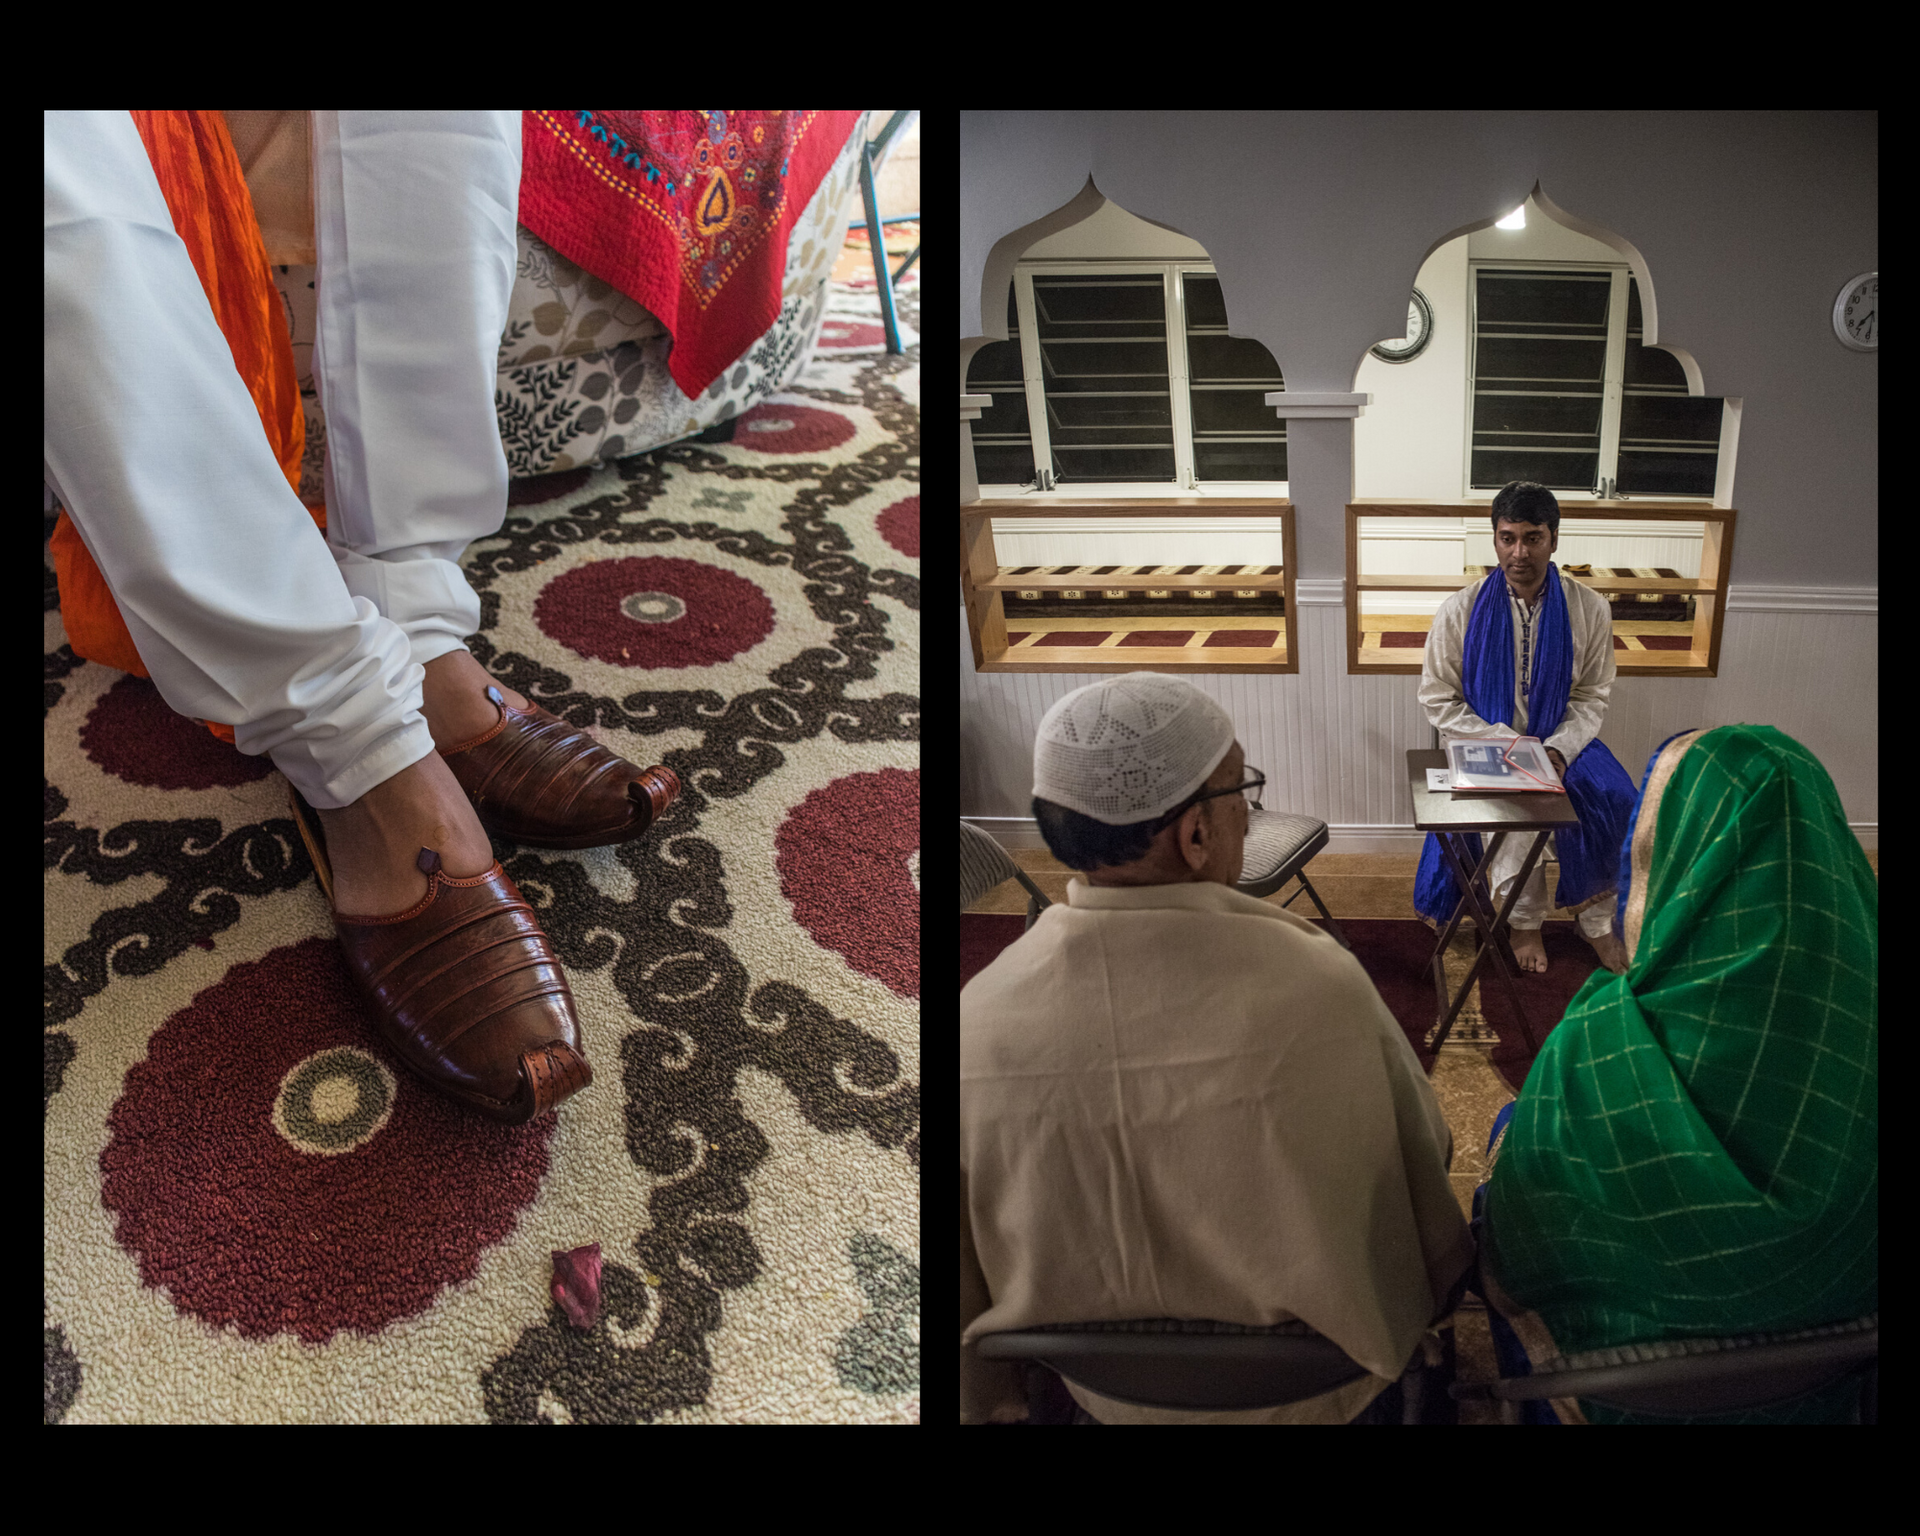 Punjabi and Nagra (traditional footwear)- a traditional outfit of a Bangladeshi wedding for a bridegroom. Except wearing Tuxedo, he is to wear punjabi during the ceremony.